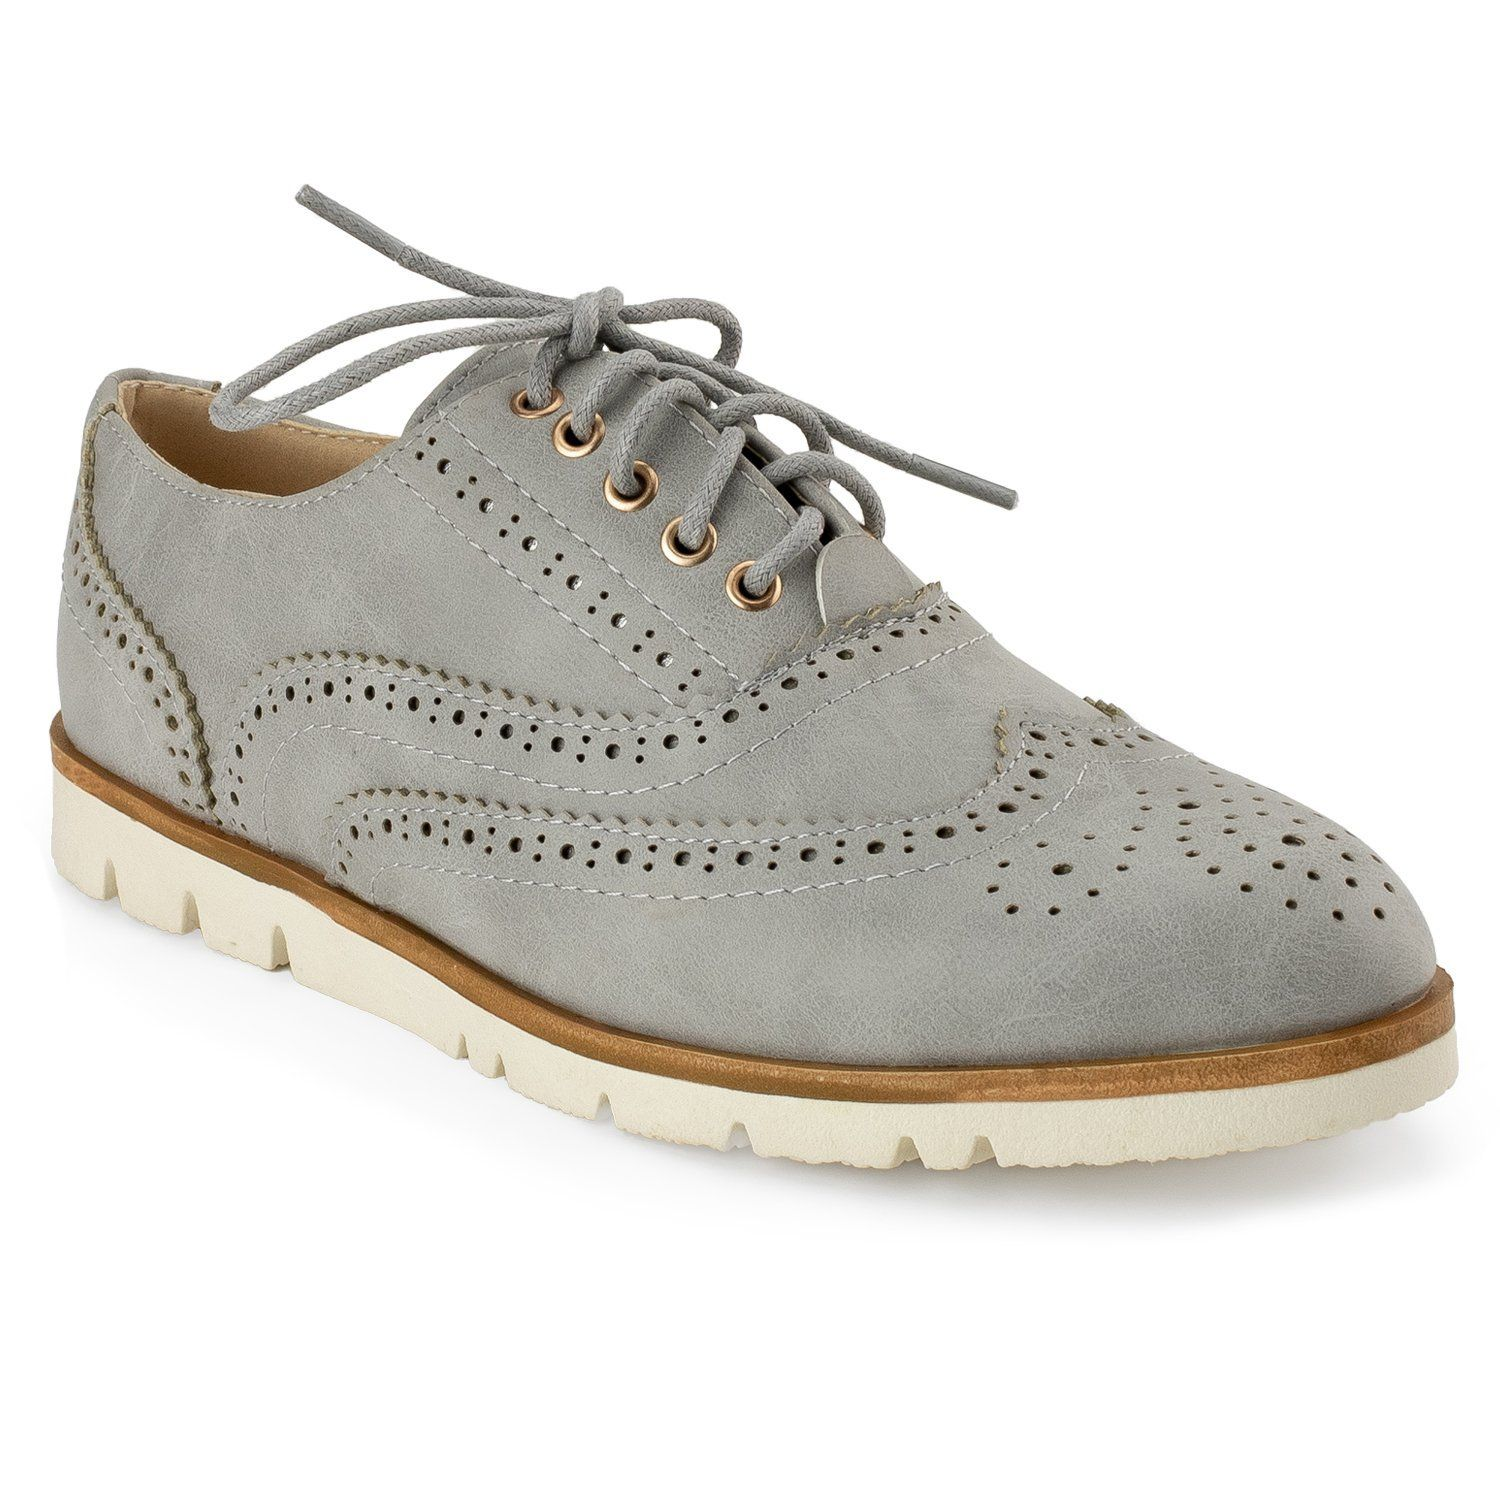 a82b26a2302d2 Amazon.com | RF ROOM OF FASHION Women's Wing Tip Saddle Lace up ...